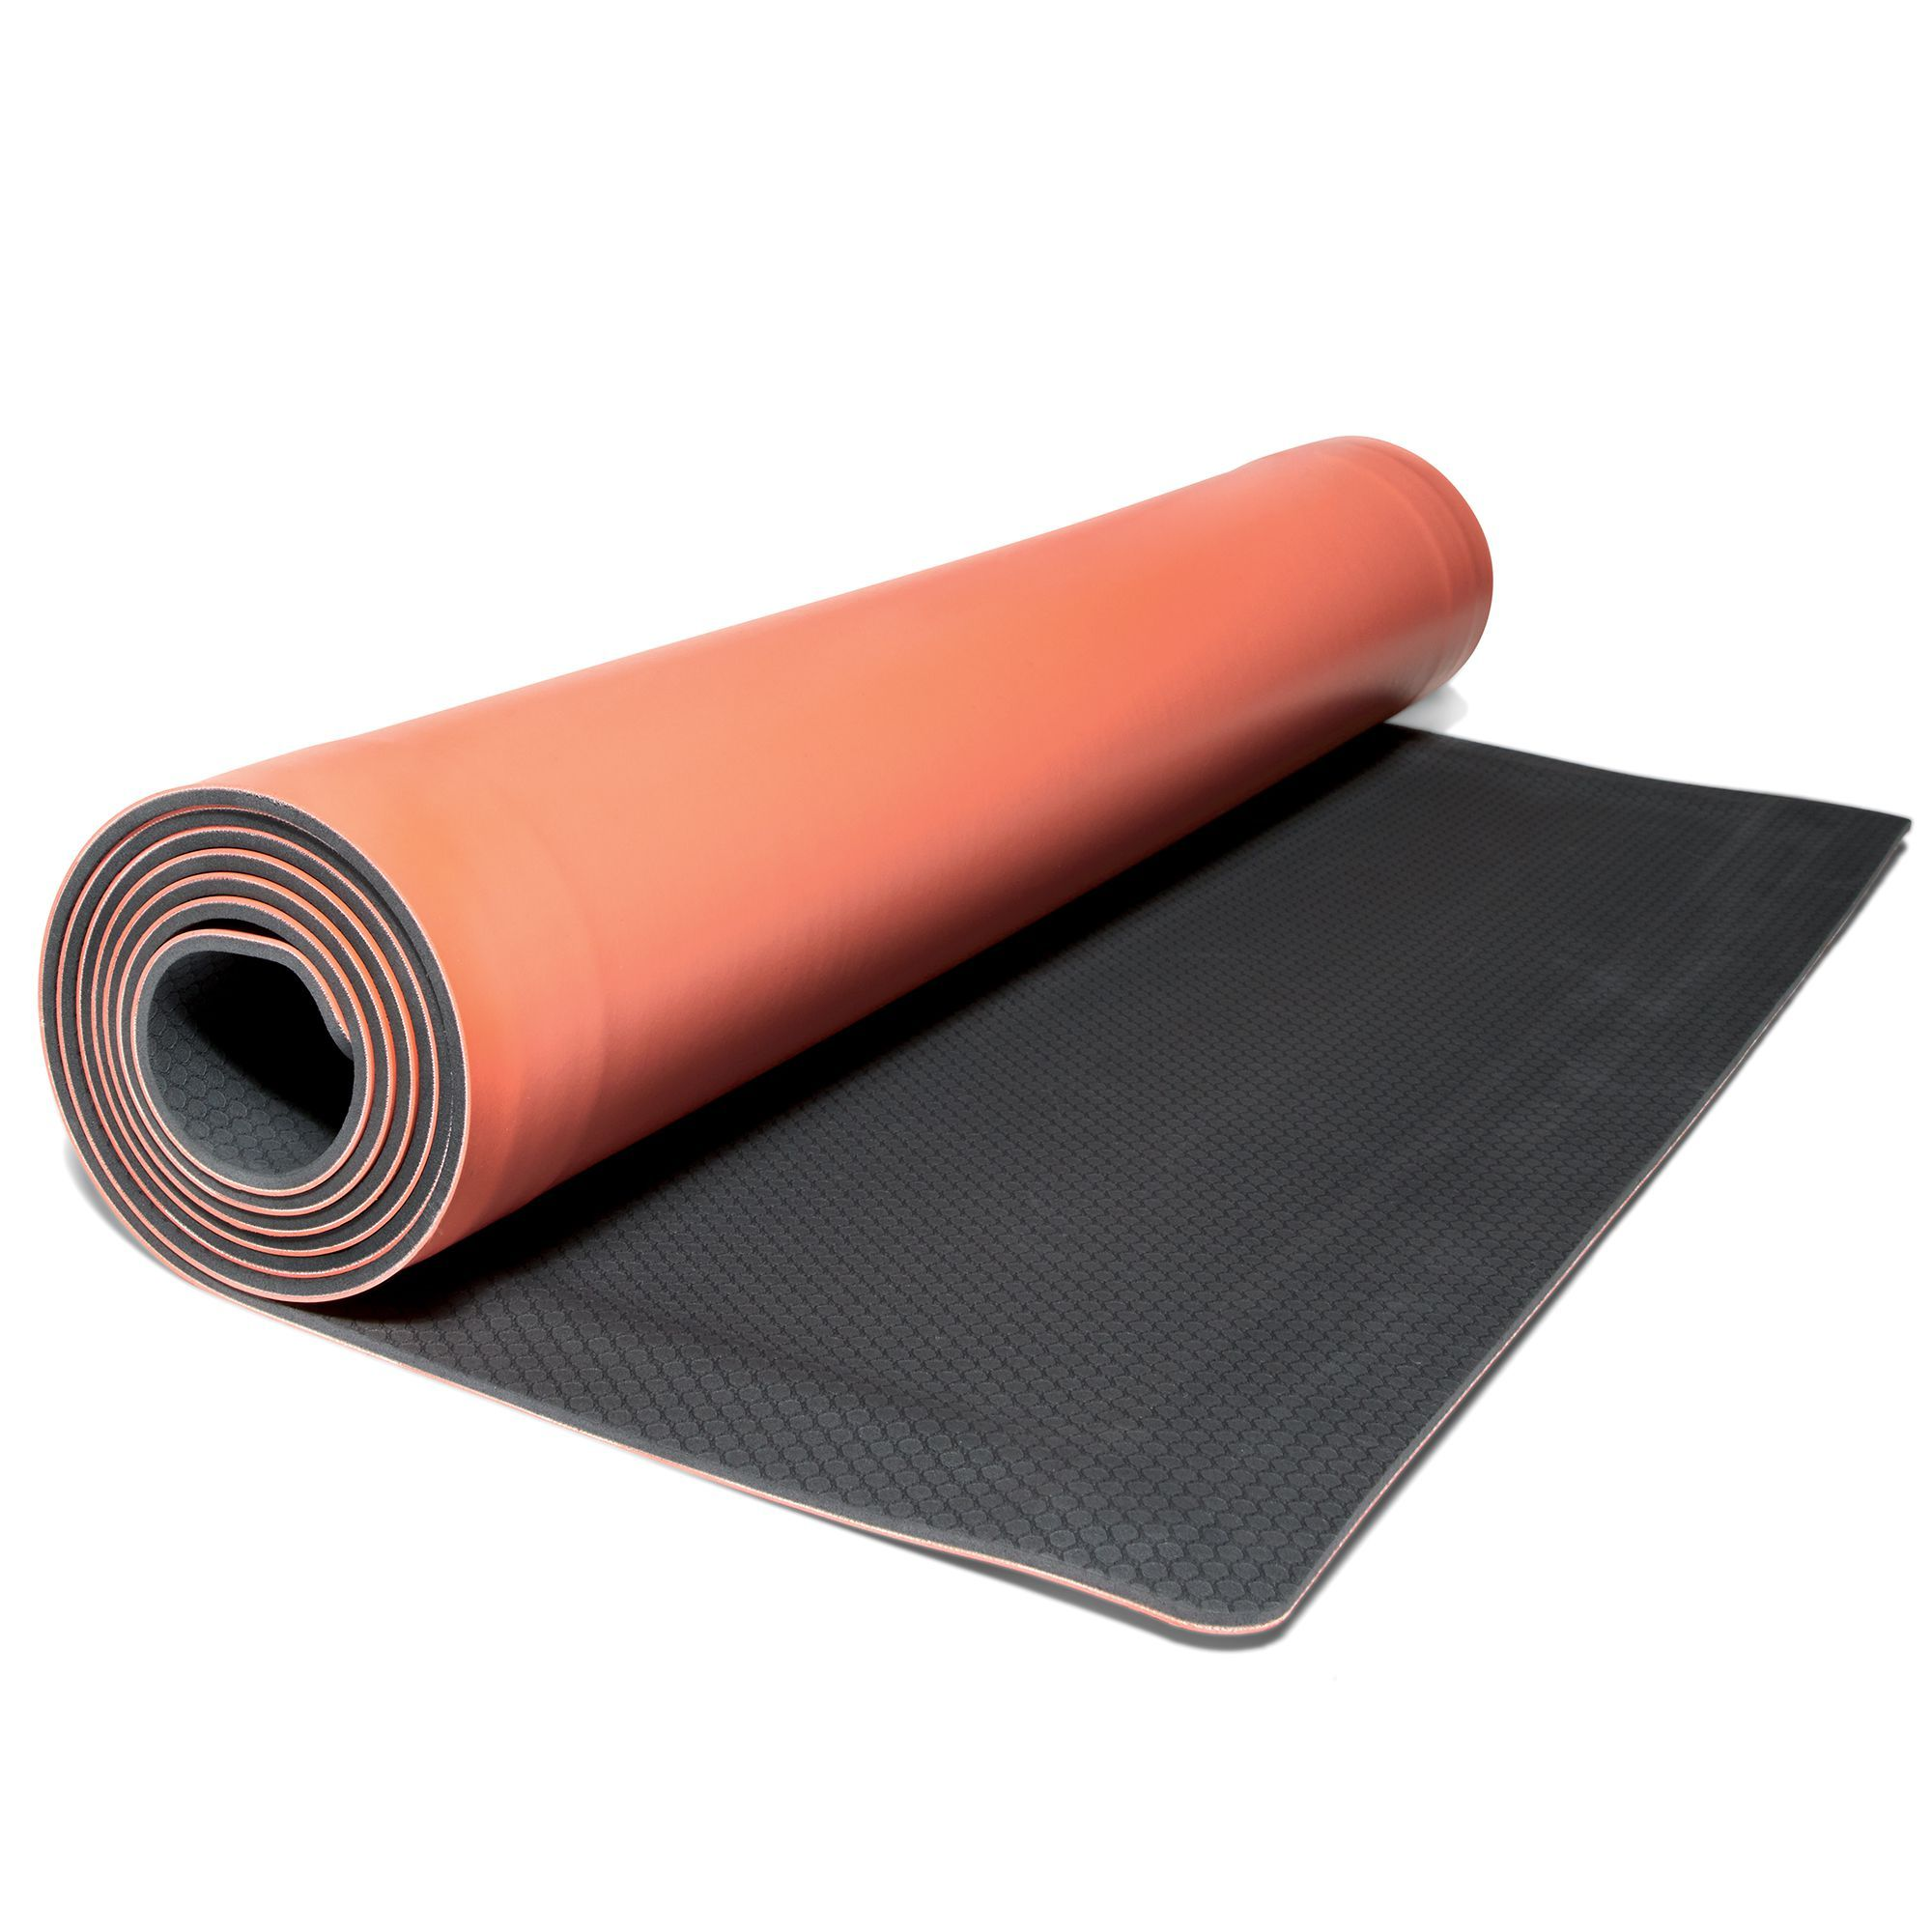 This Genius Exercise Mat Rolls Itself Up Like A Slap Bracelet